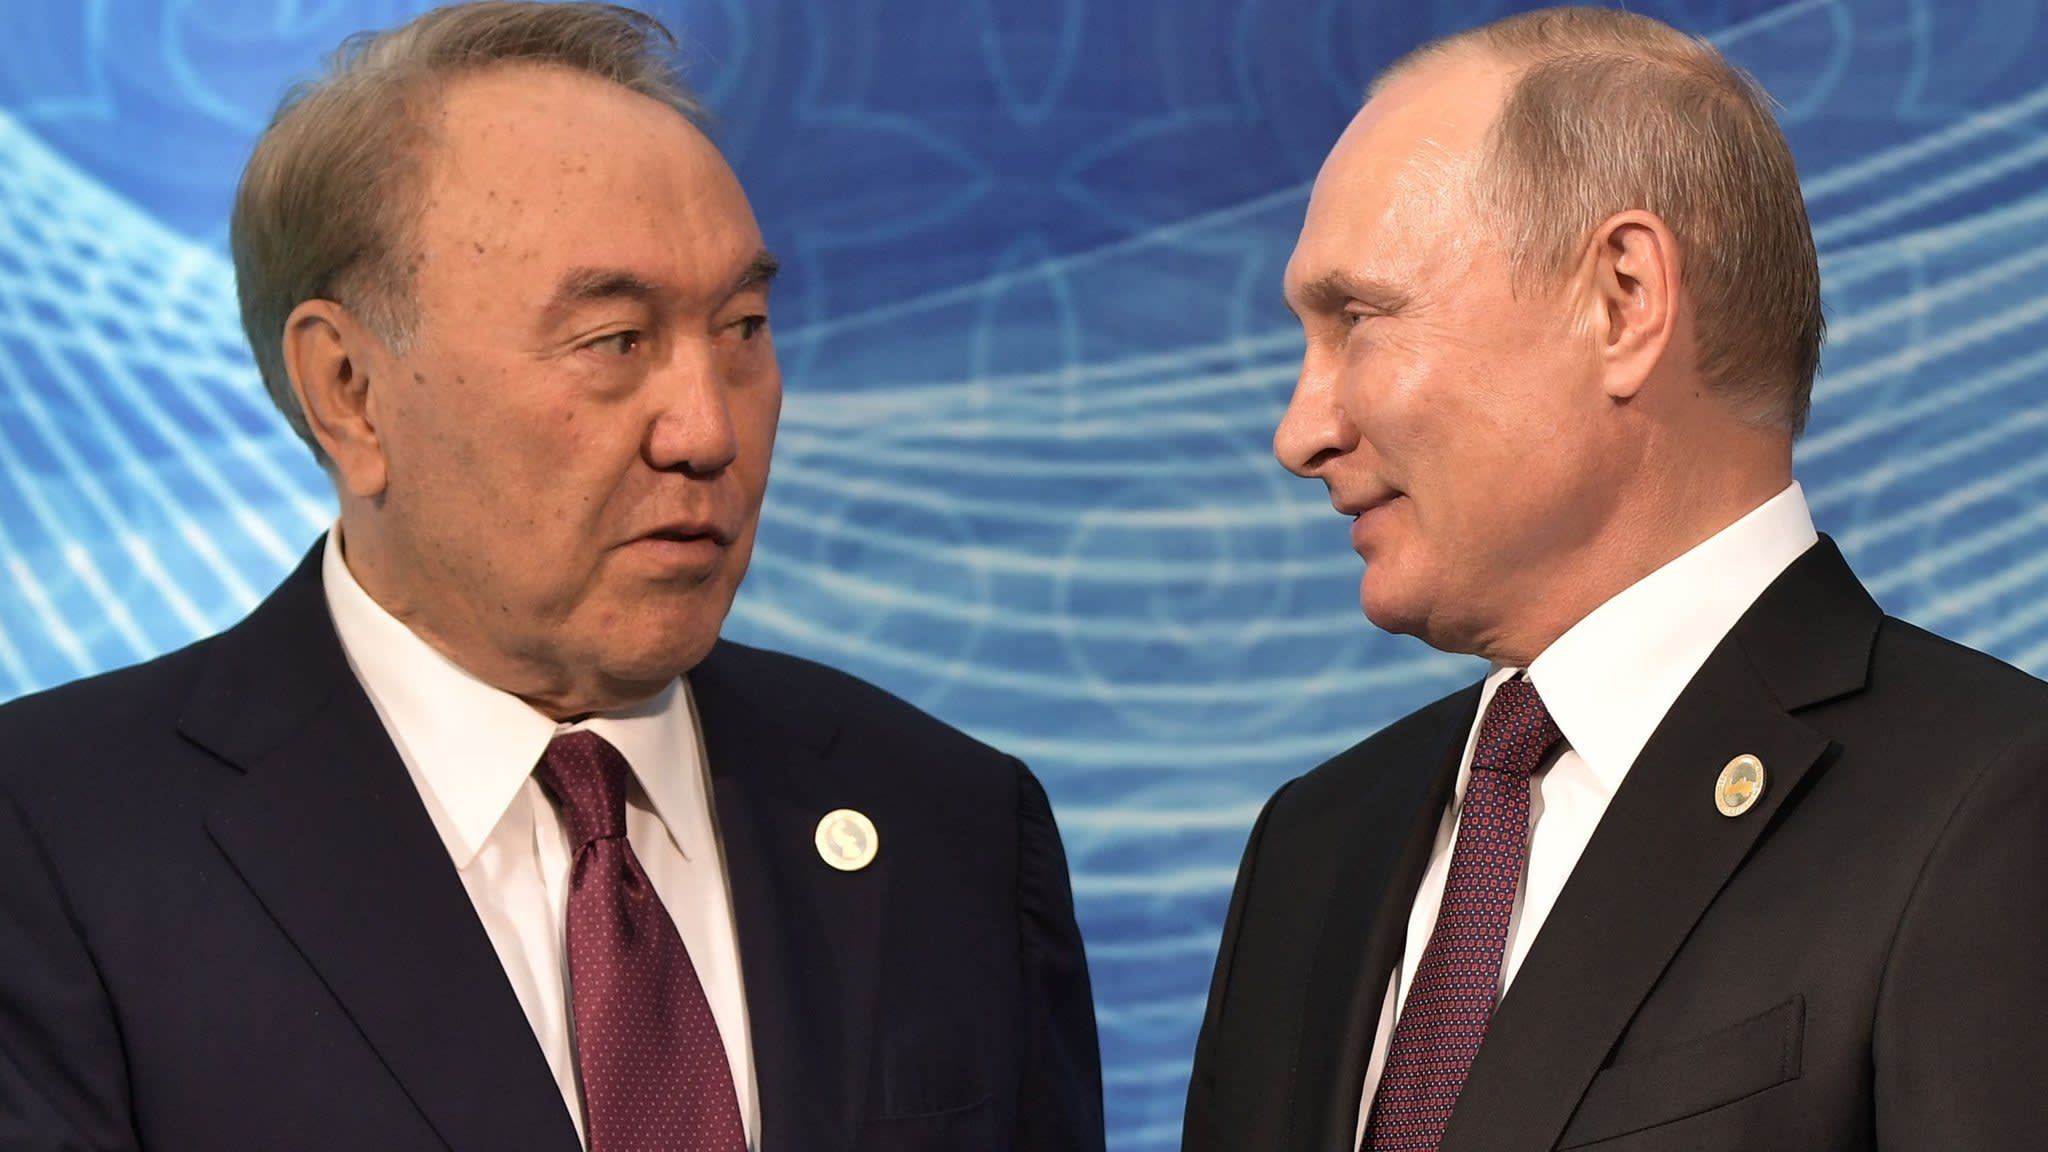 Putin pledges deeper ties with Iran and other Caspian Sea states